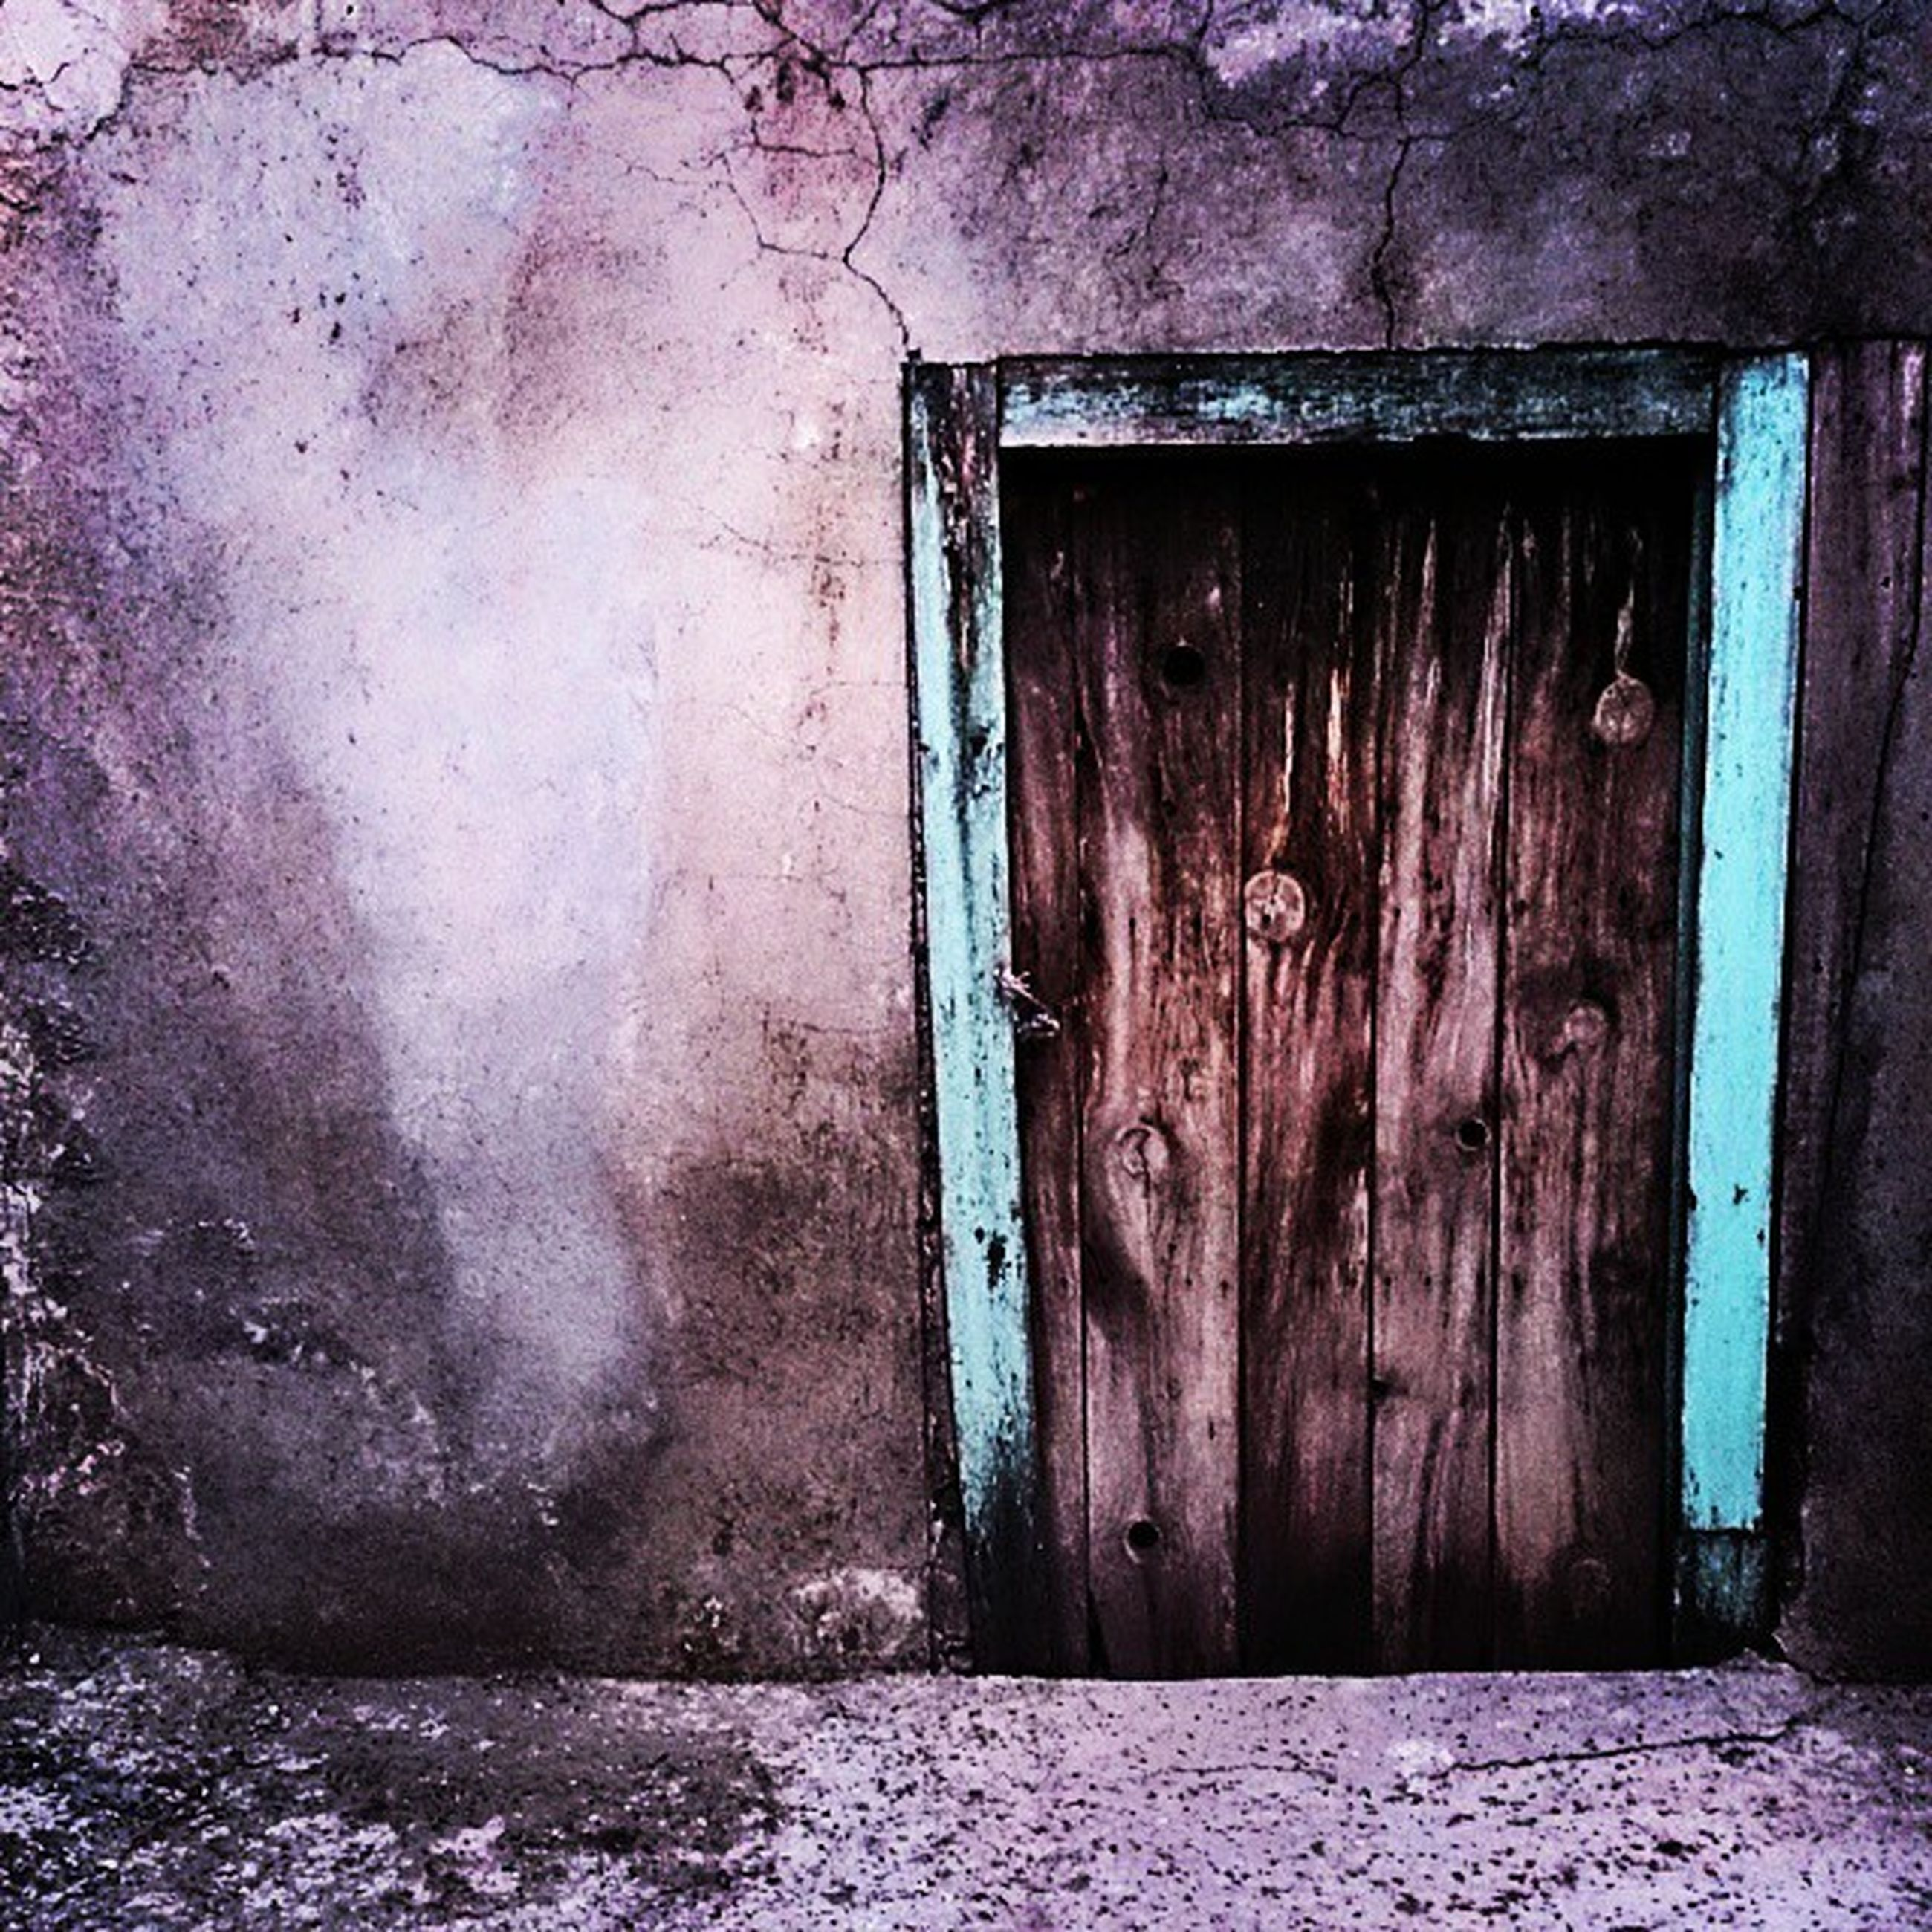 built structure, door, architecture, weathered, old, abandoned, closed, building exterior, house, damaged, deterioration, run-down, wall - building feature, obsolete, wood - material, window, wall, entrance, bad condition, day